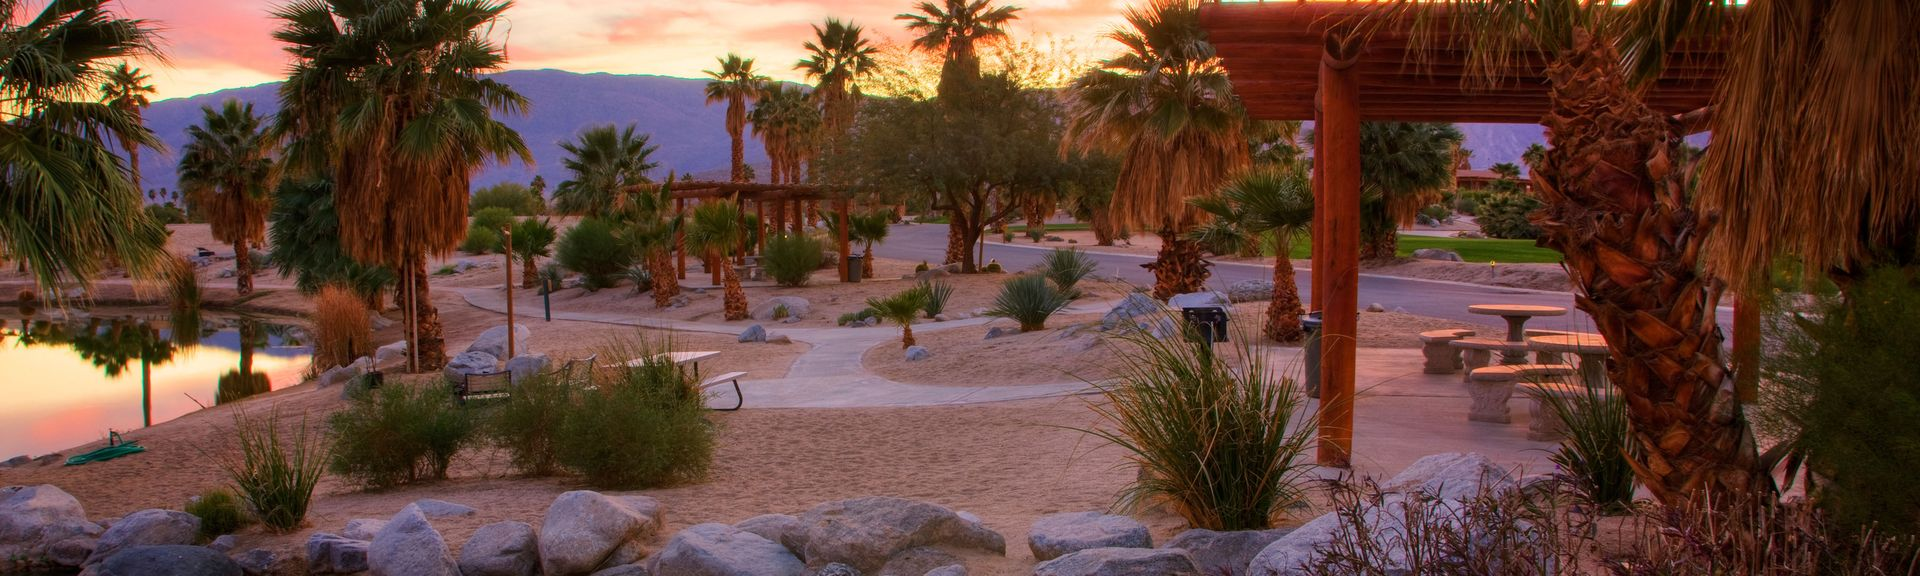 Borrego Springs, Califórnia, Estados Unidos